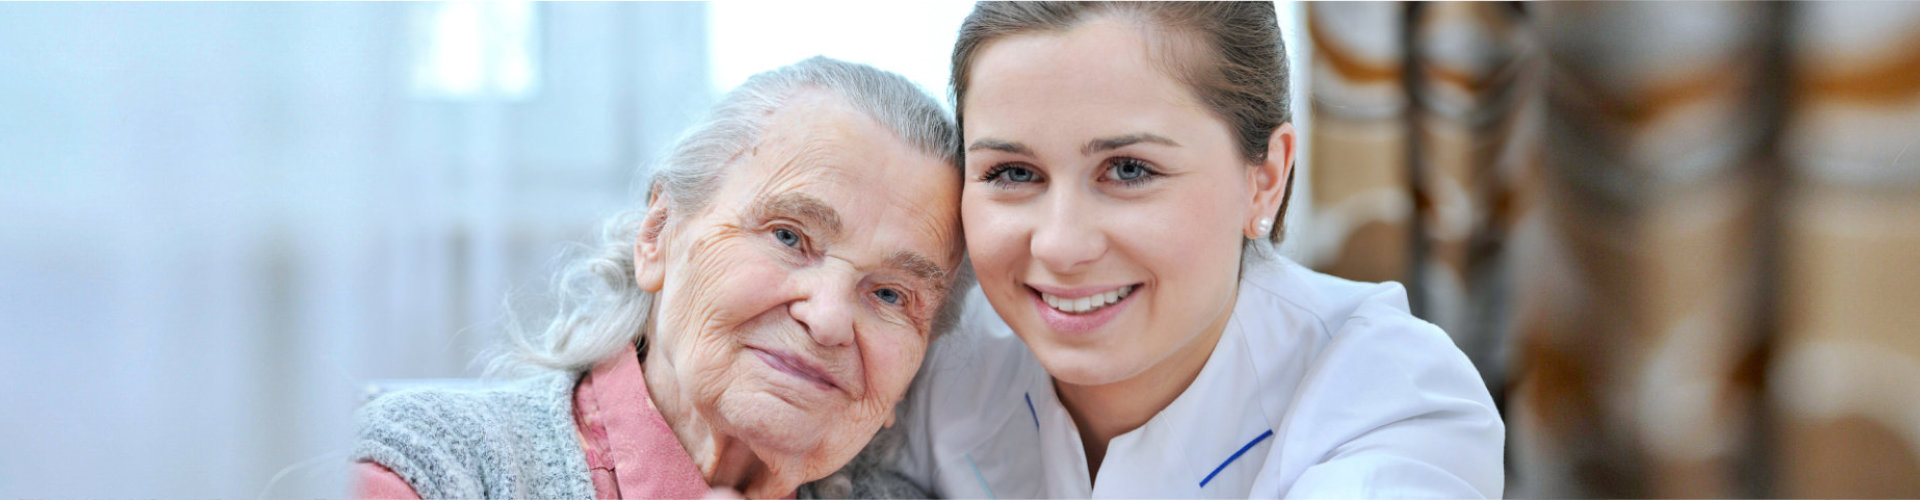 senior woman with caregiver smiling